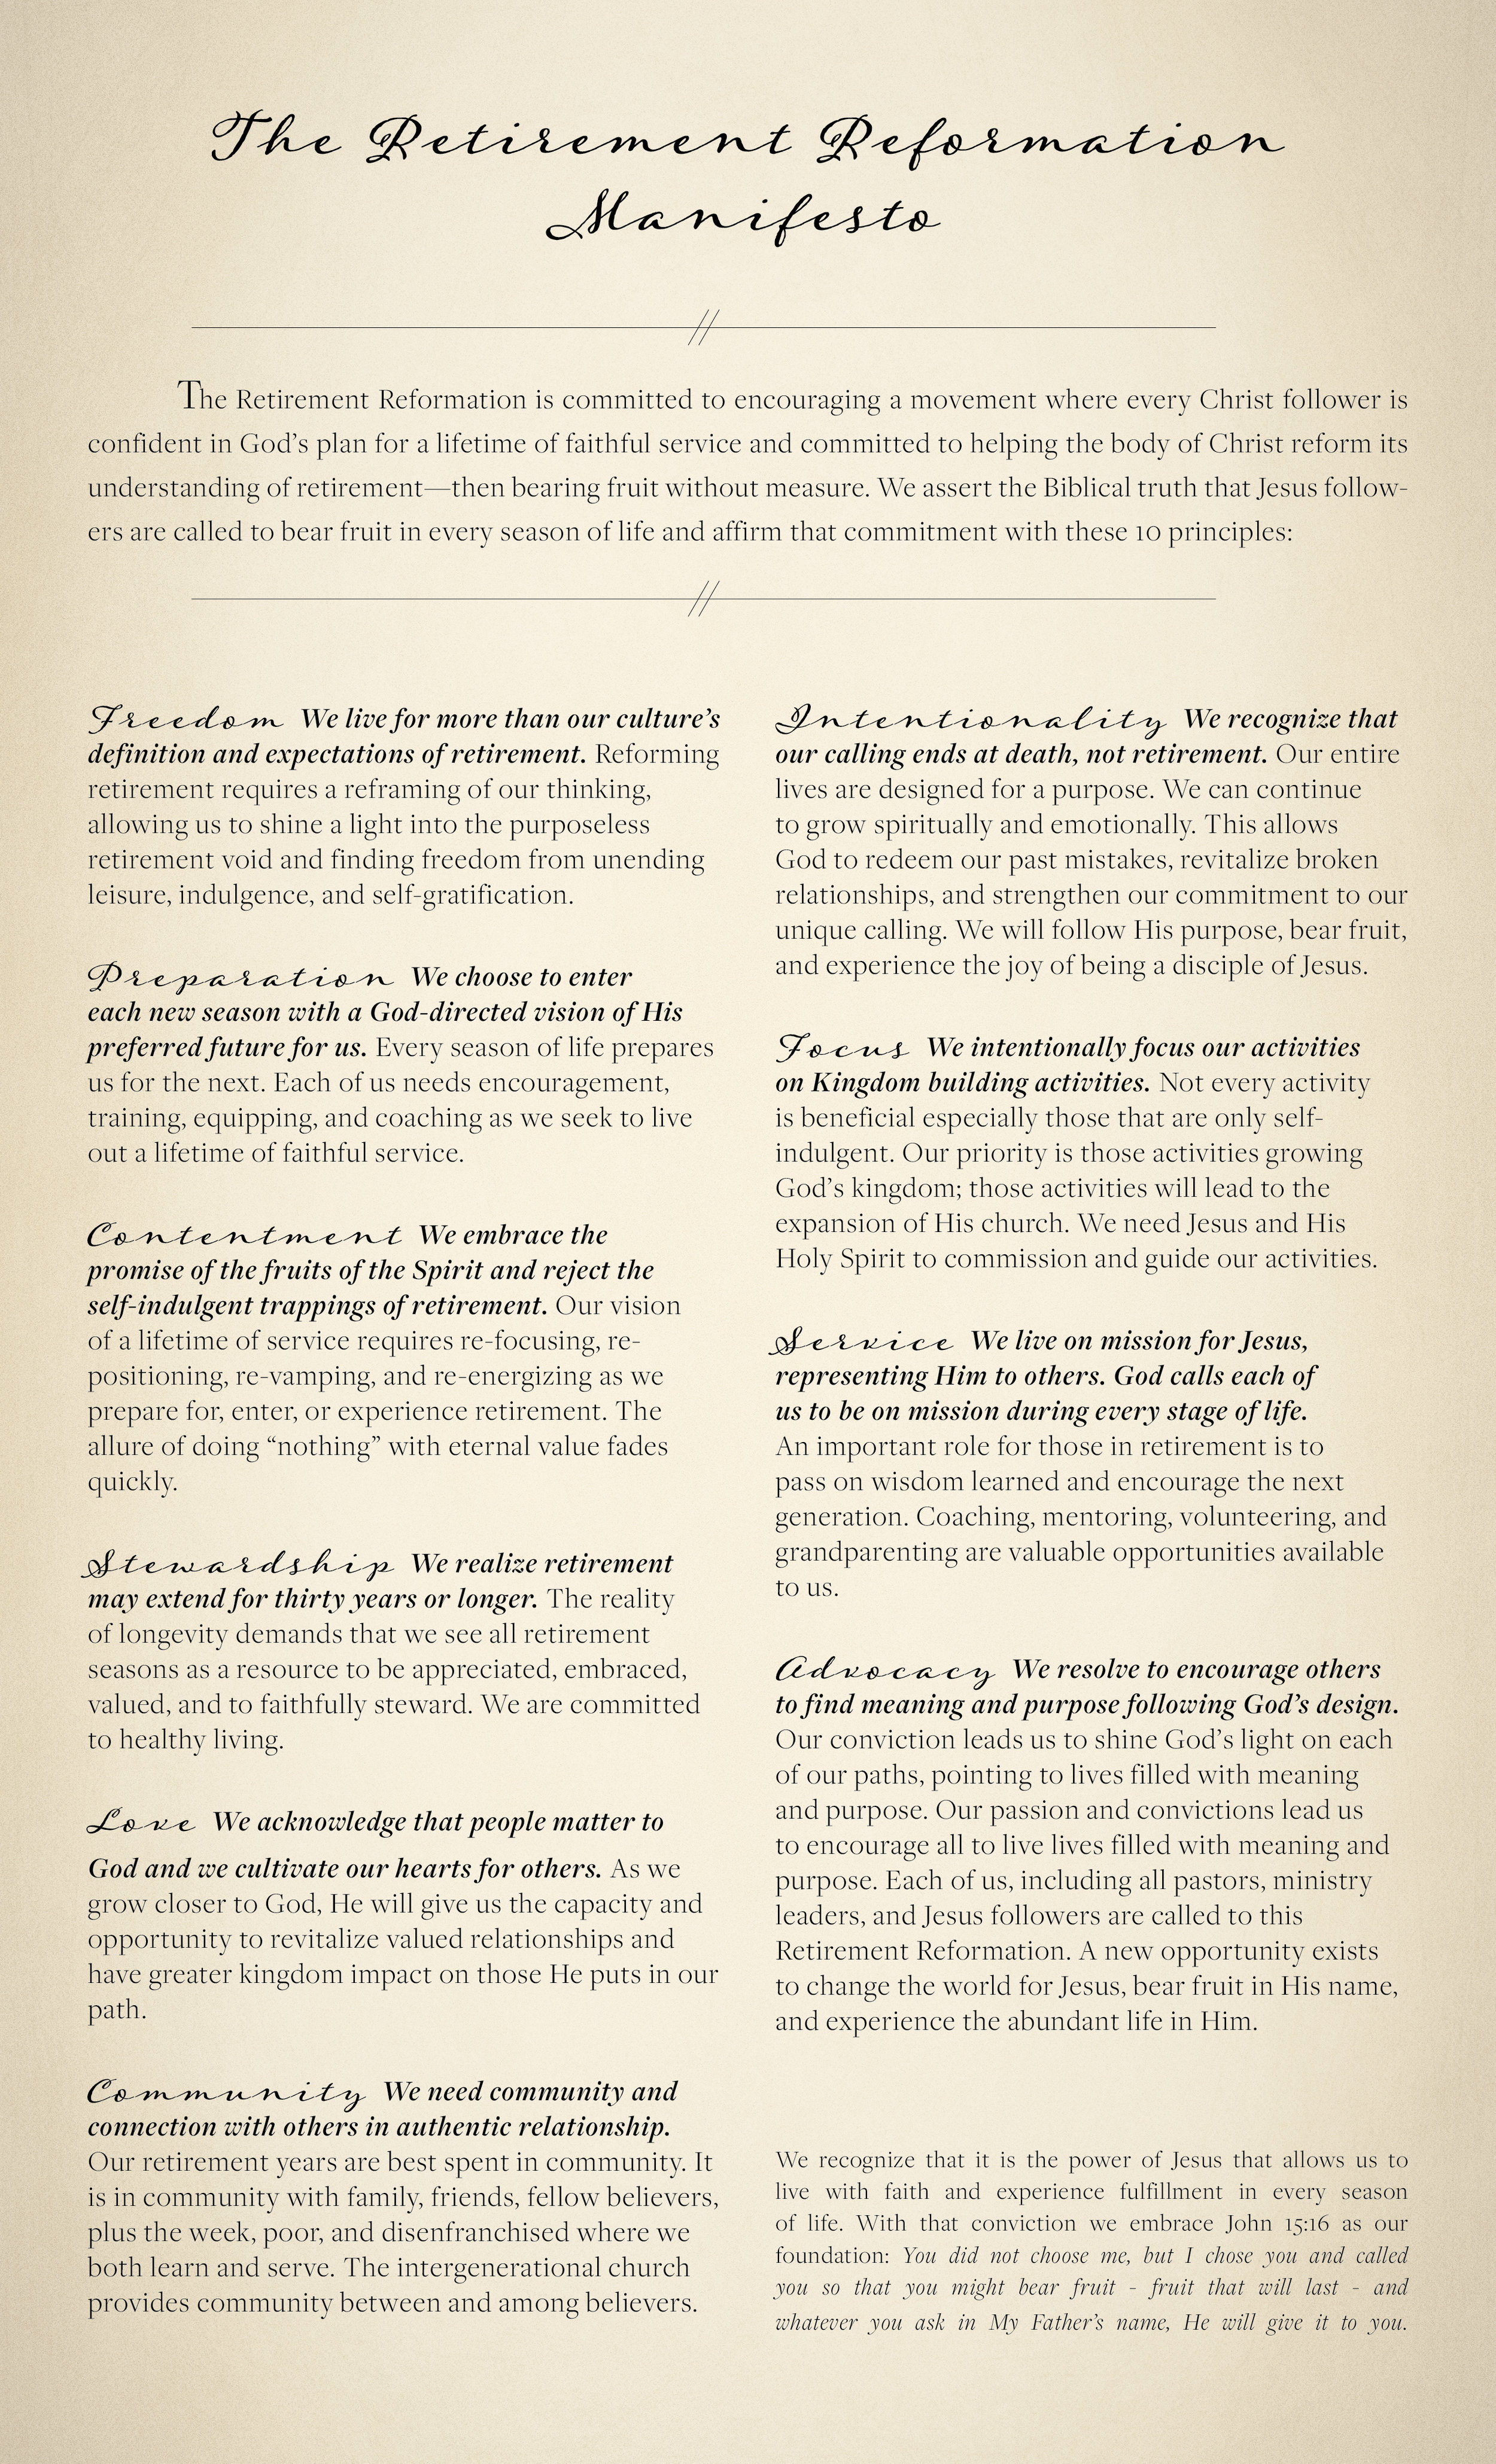 Get a Copy of the Manifesto - Click Here